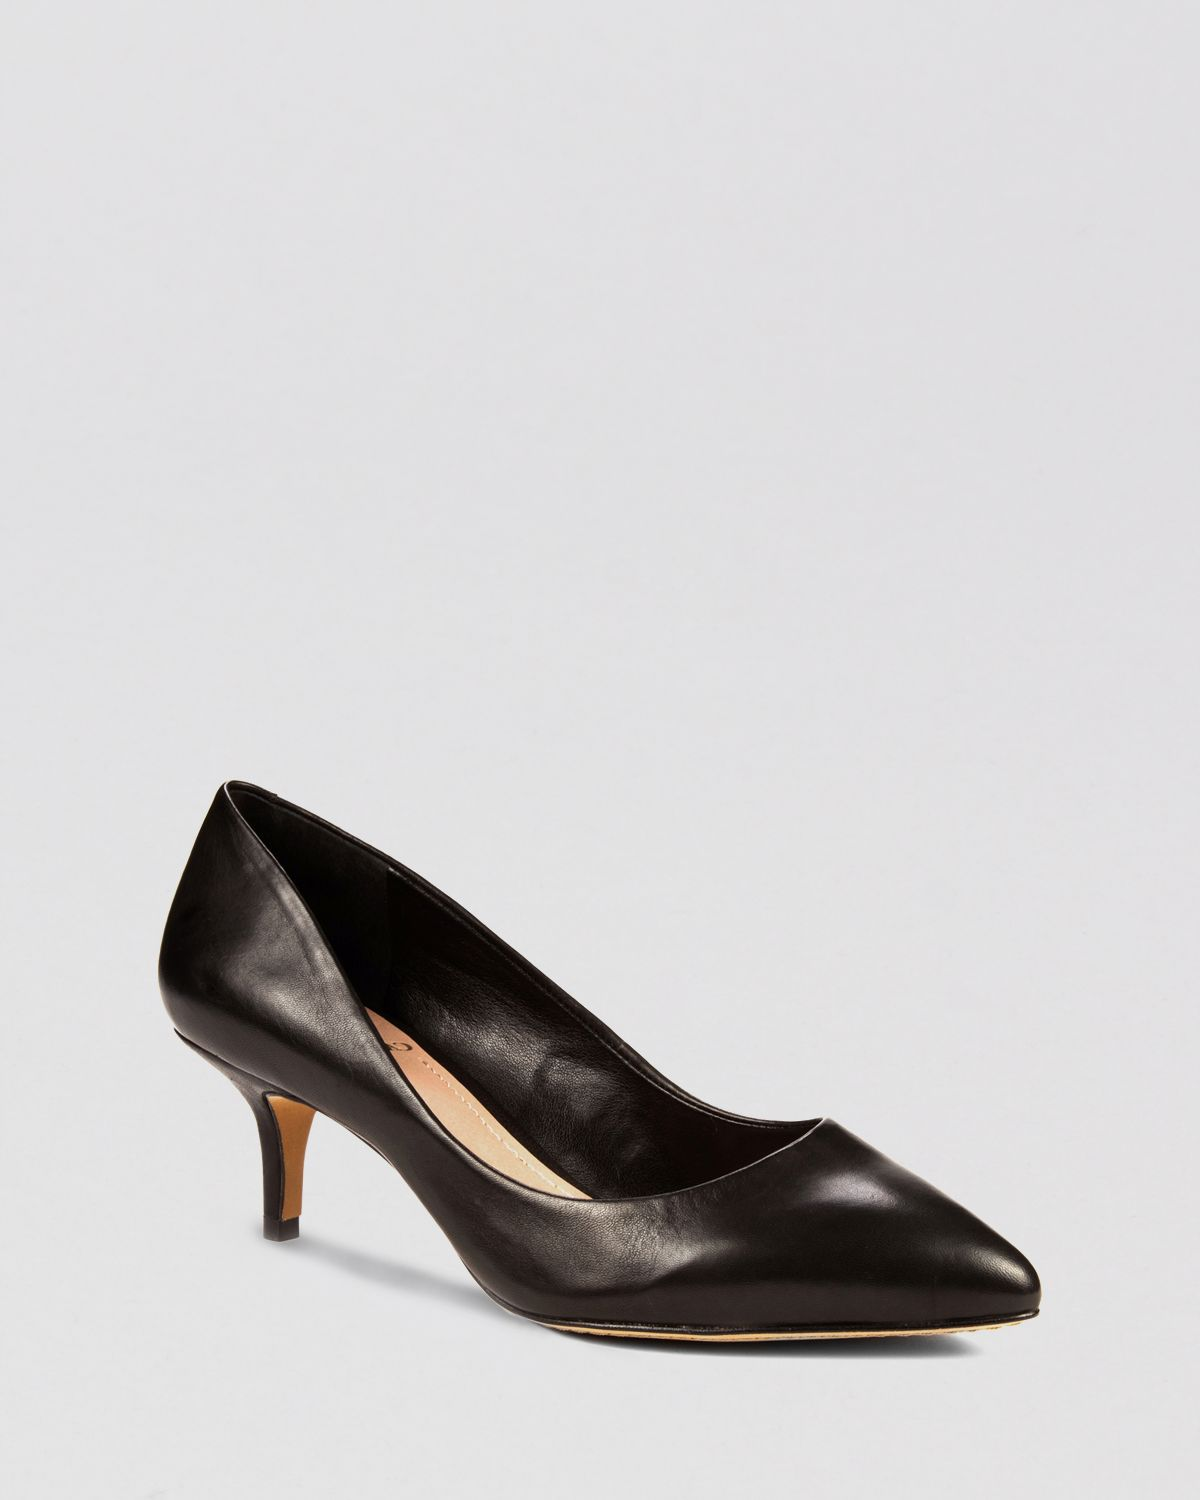 Vince camuto Pointed Toe Pumps Goldie Low Heel in Black | Lyst